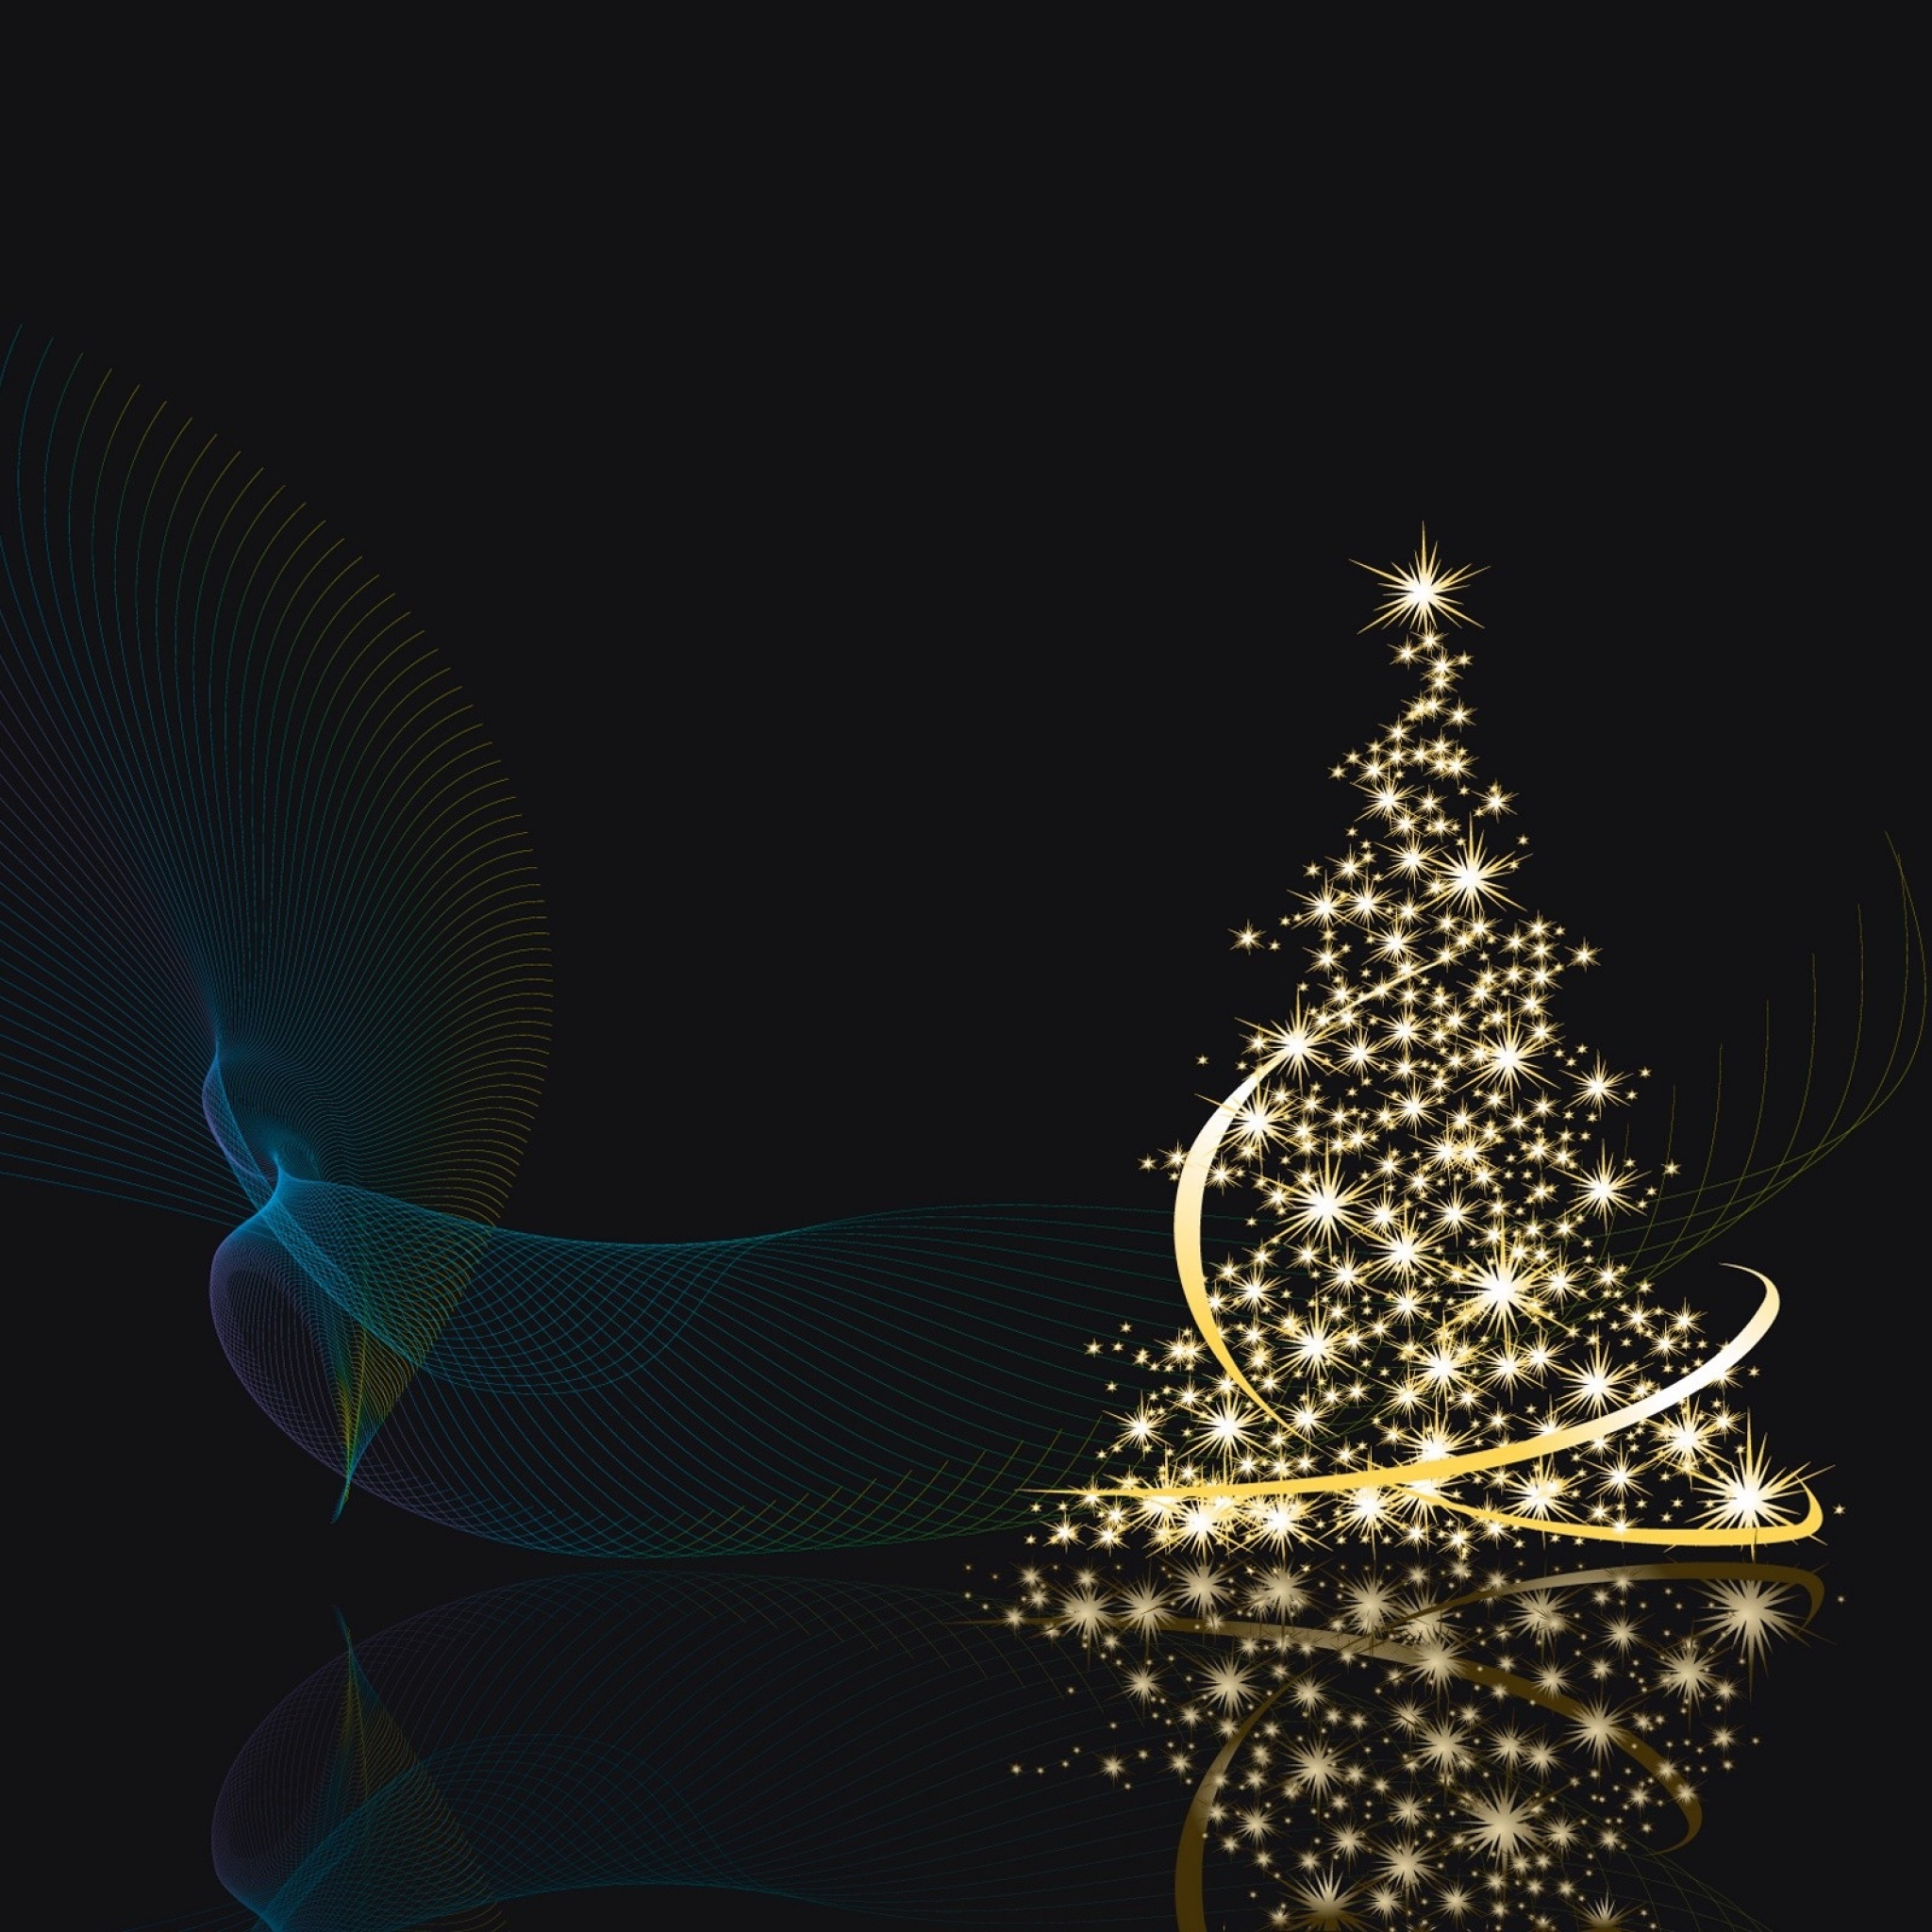 28586 download wallpaper Holidays, Background, New Year, Christmas, Xmas screensavers and pictures for free